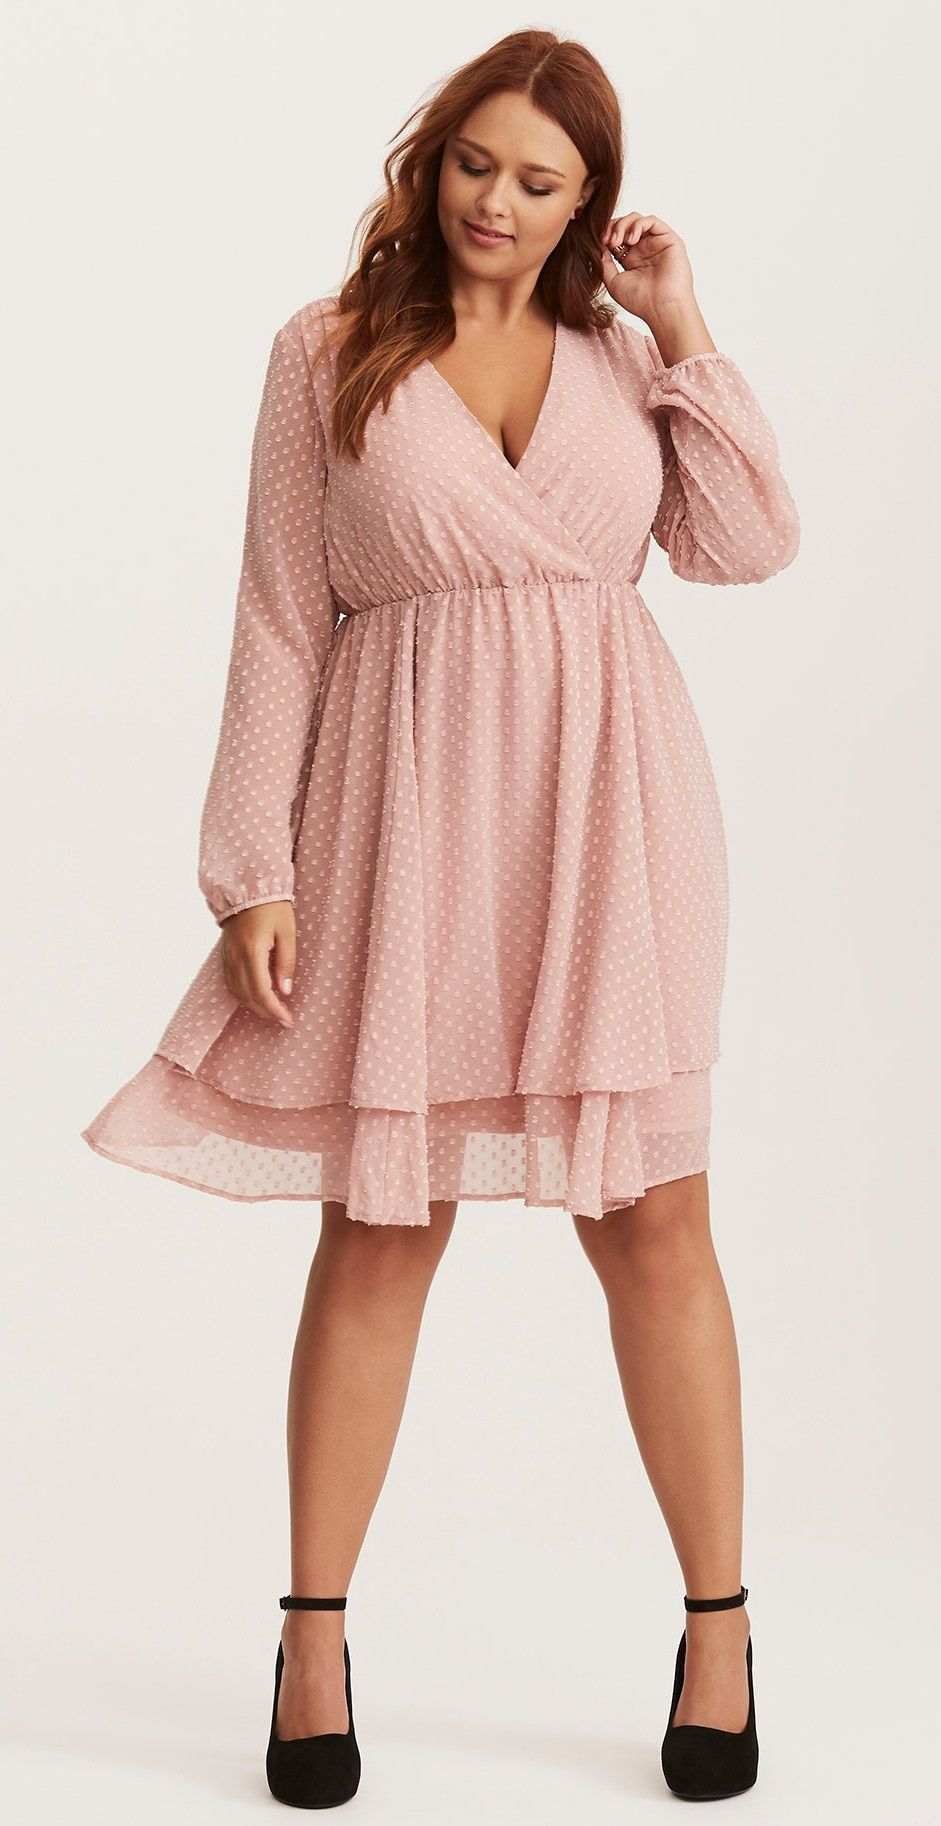 Plus Size Skater Dress | Plus Size Party Dress | Ropa | Pinterest ...